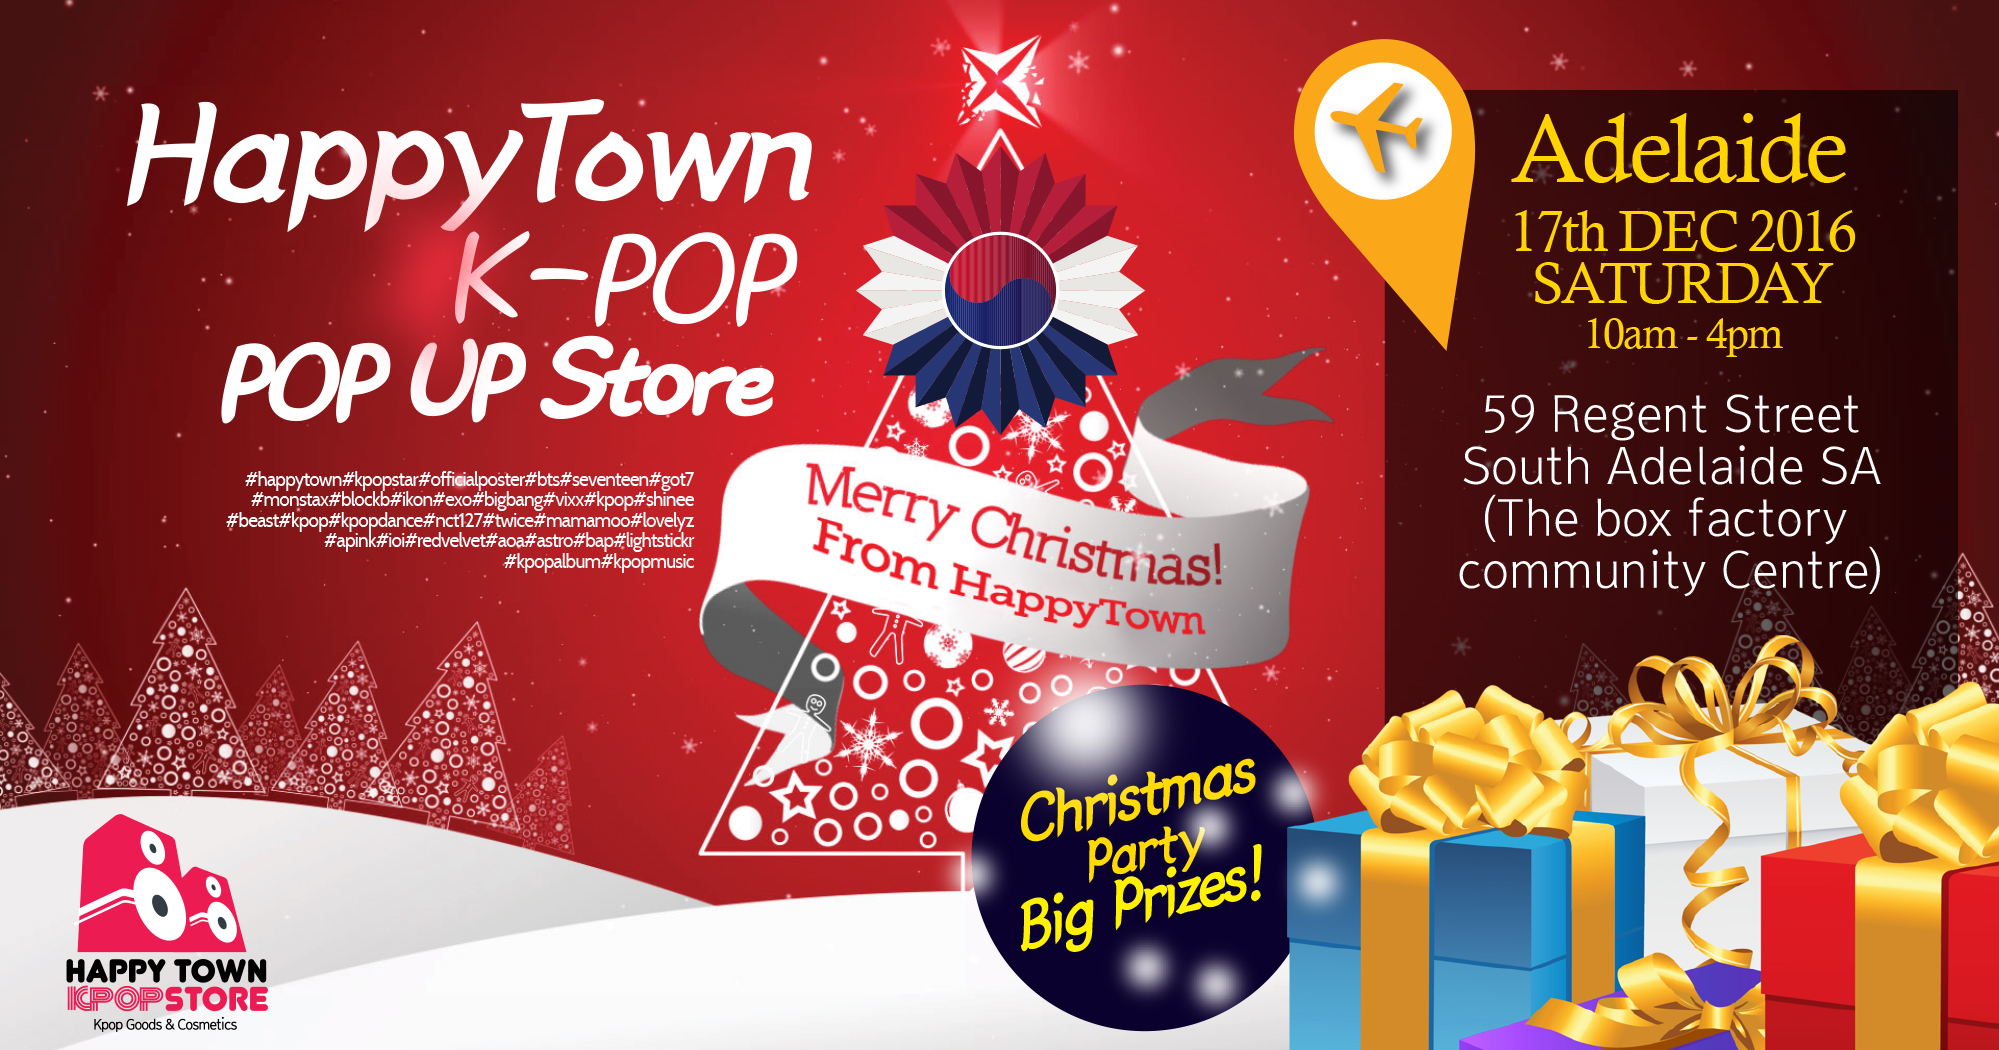 X-mas POP UP STORE* in ADELAIDE | HappyTown | Kpop Store in Melbourne